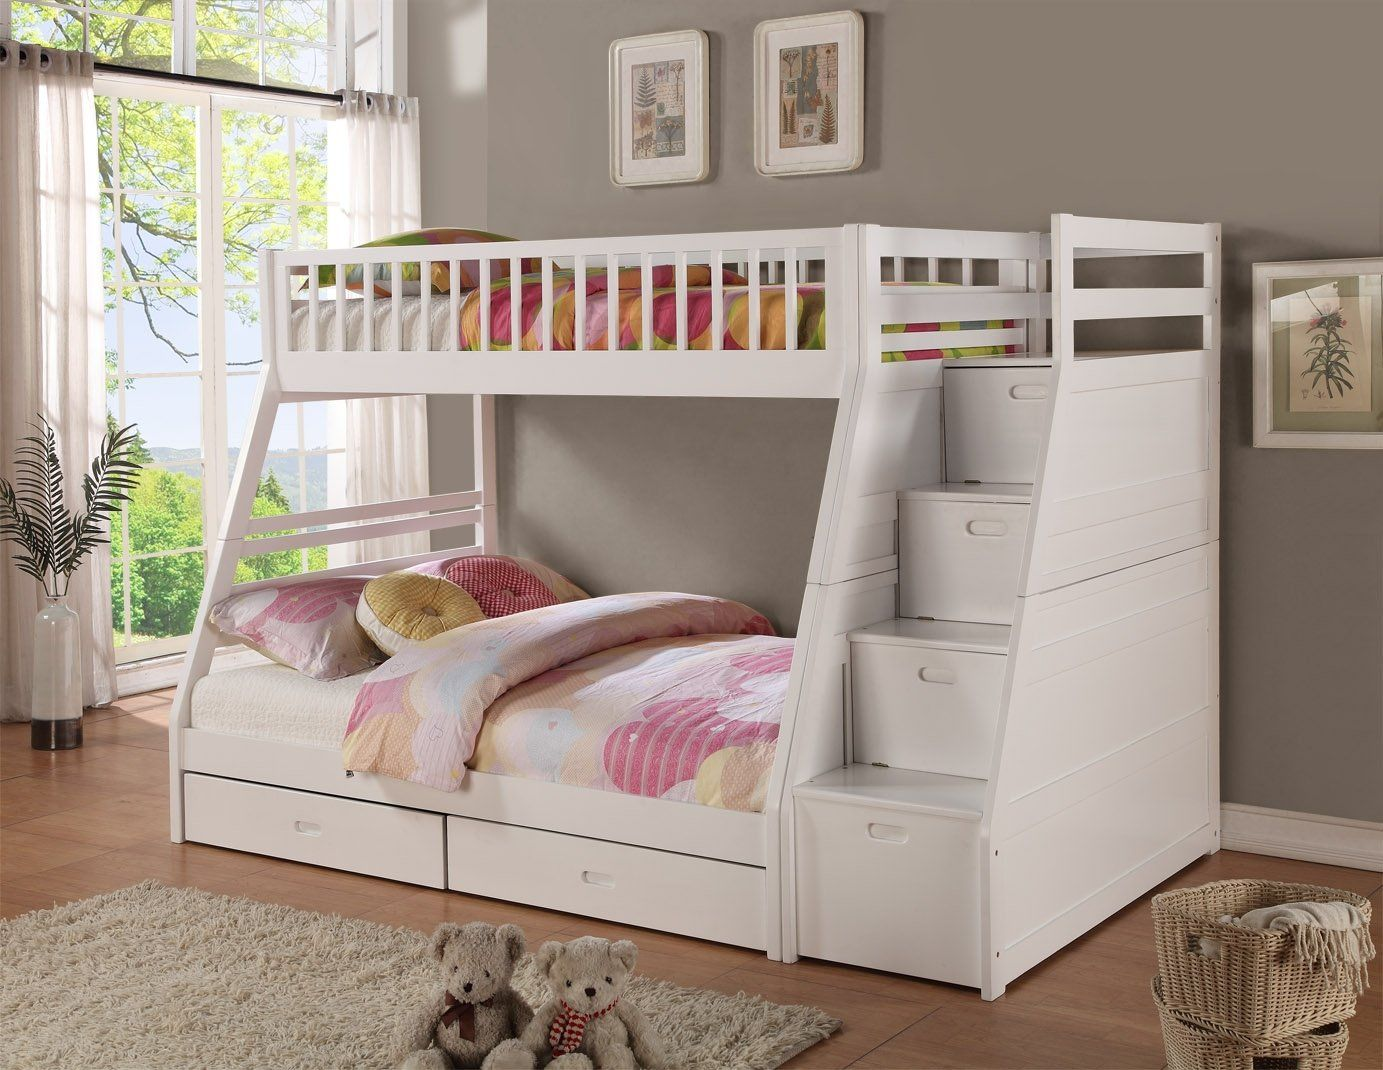 Amazon Com Twin Full Storage Step Bunk Bed 2 Drawers White Furniture Decor Bunk Beds With Storage White Bunk Beds Bunk Beds With Drawers